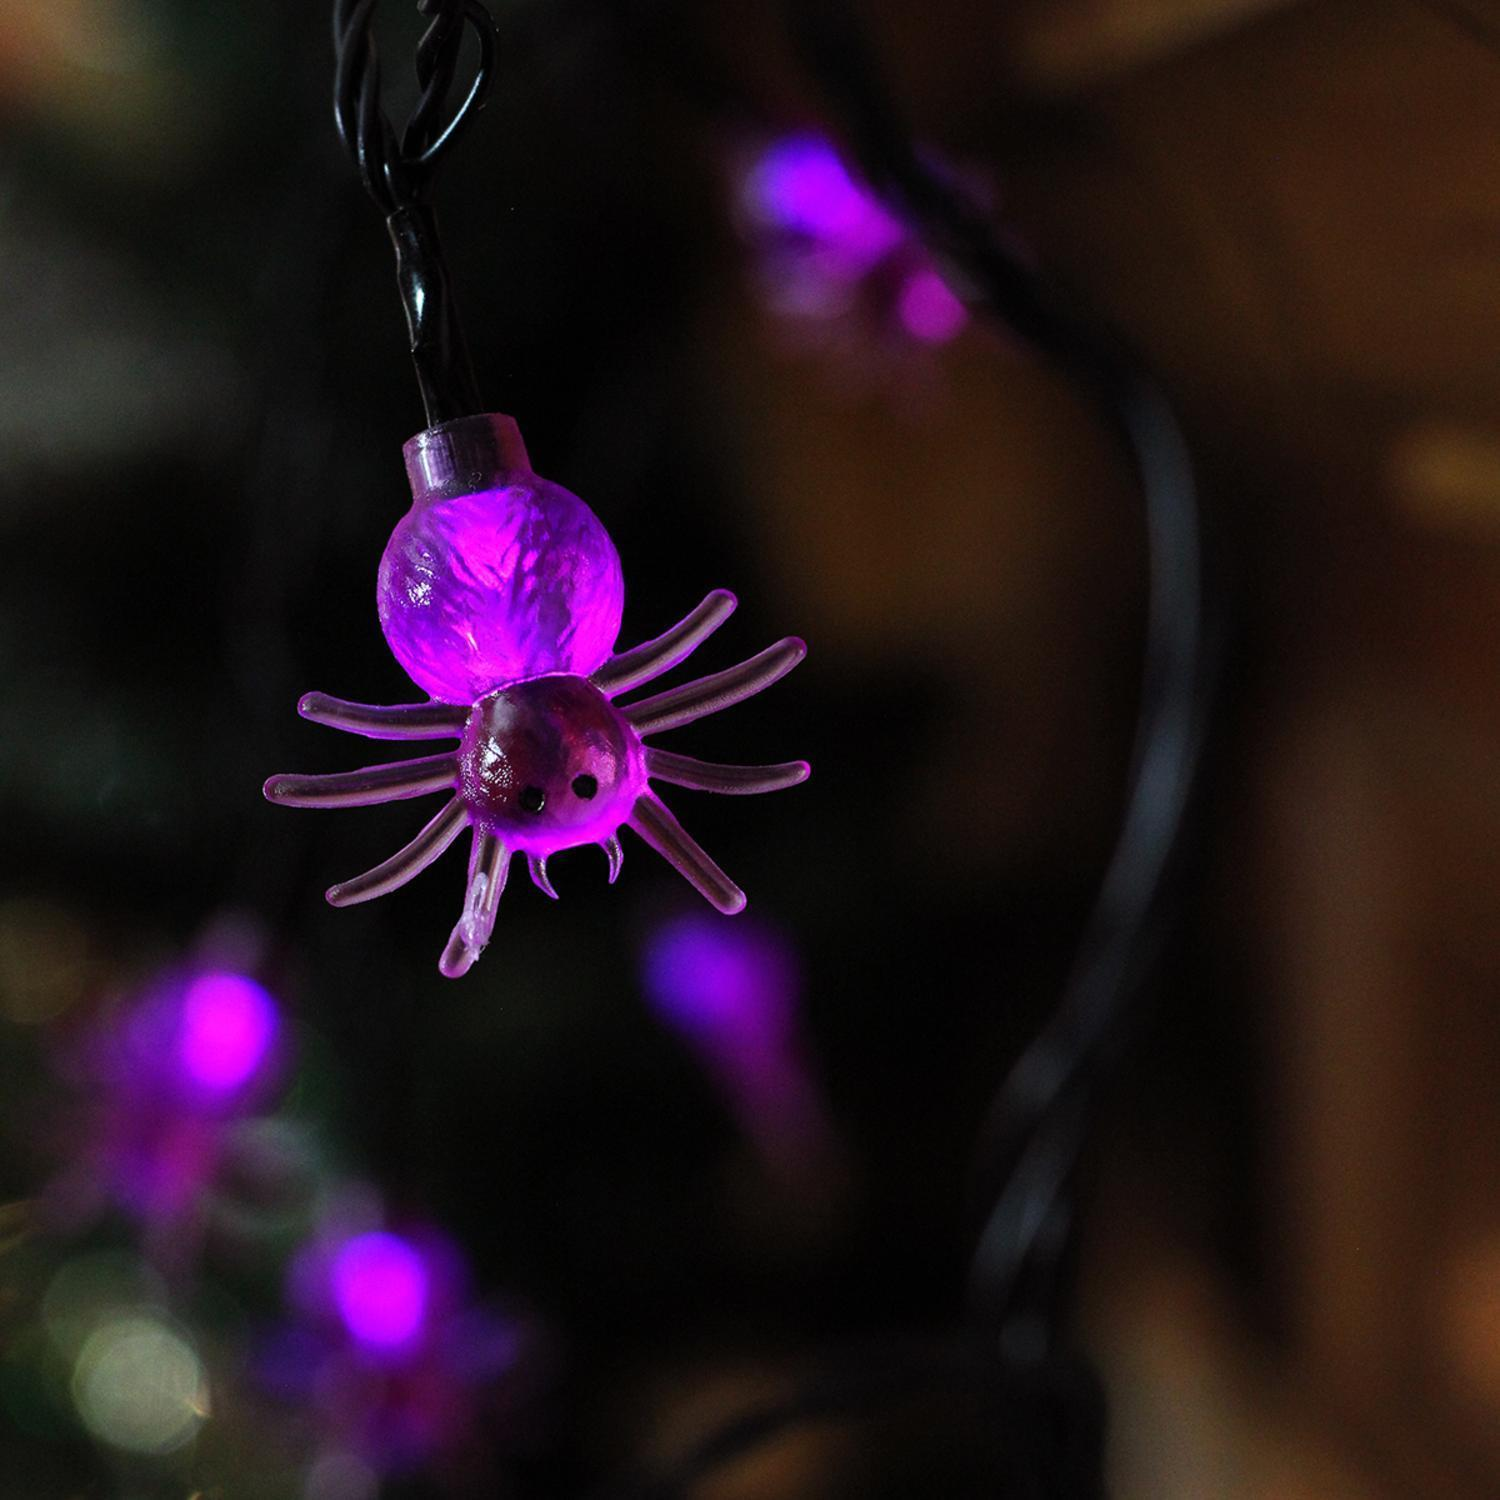 Product Works 10 B/O Purple Spider LED Novelty Halloween Lights Black Wire